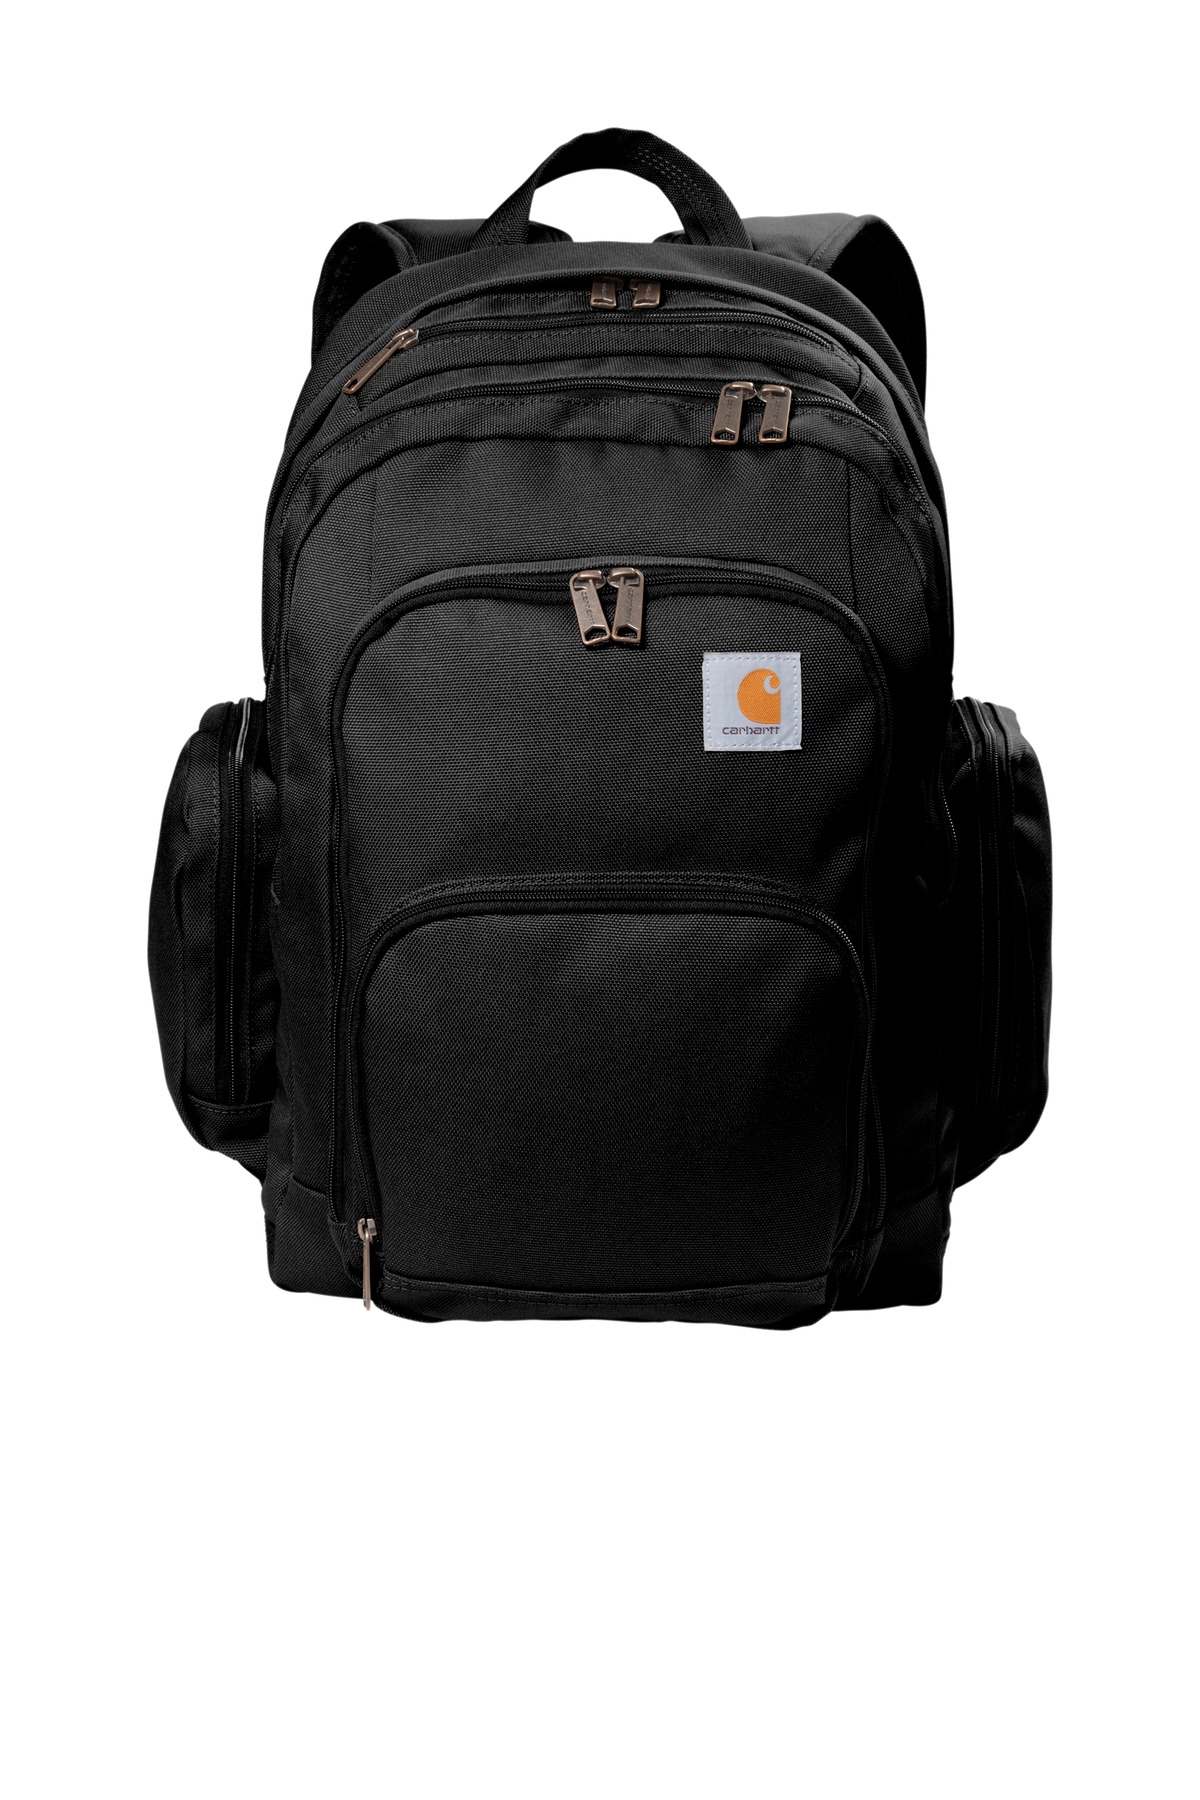 Carhartt  ®  Foundry Series Pro Backpack. CT89176508 - Black